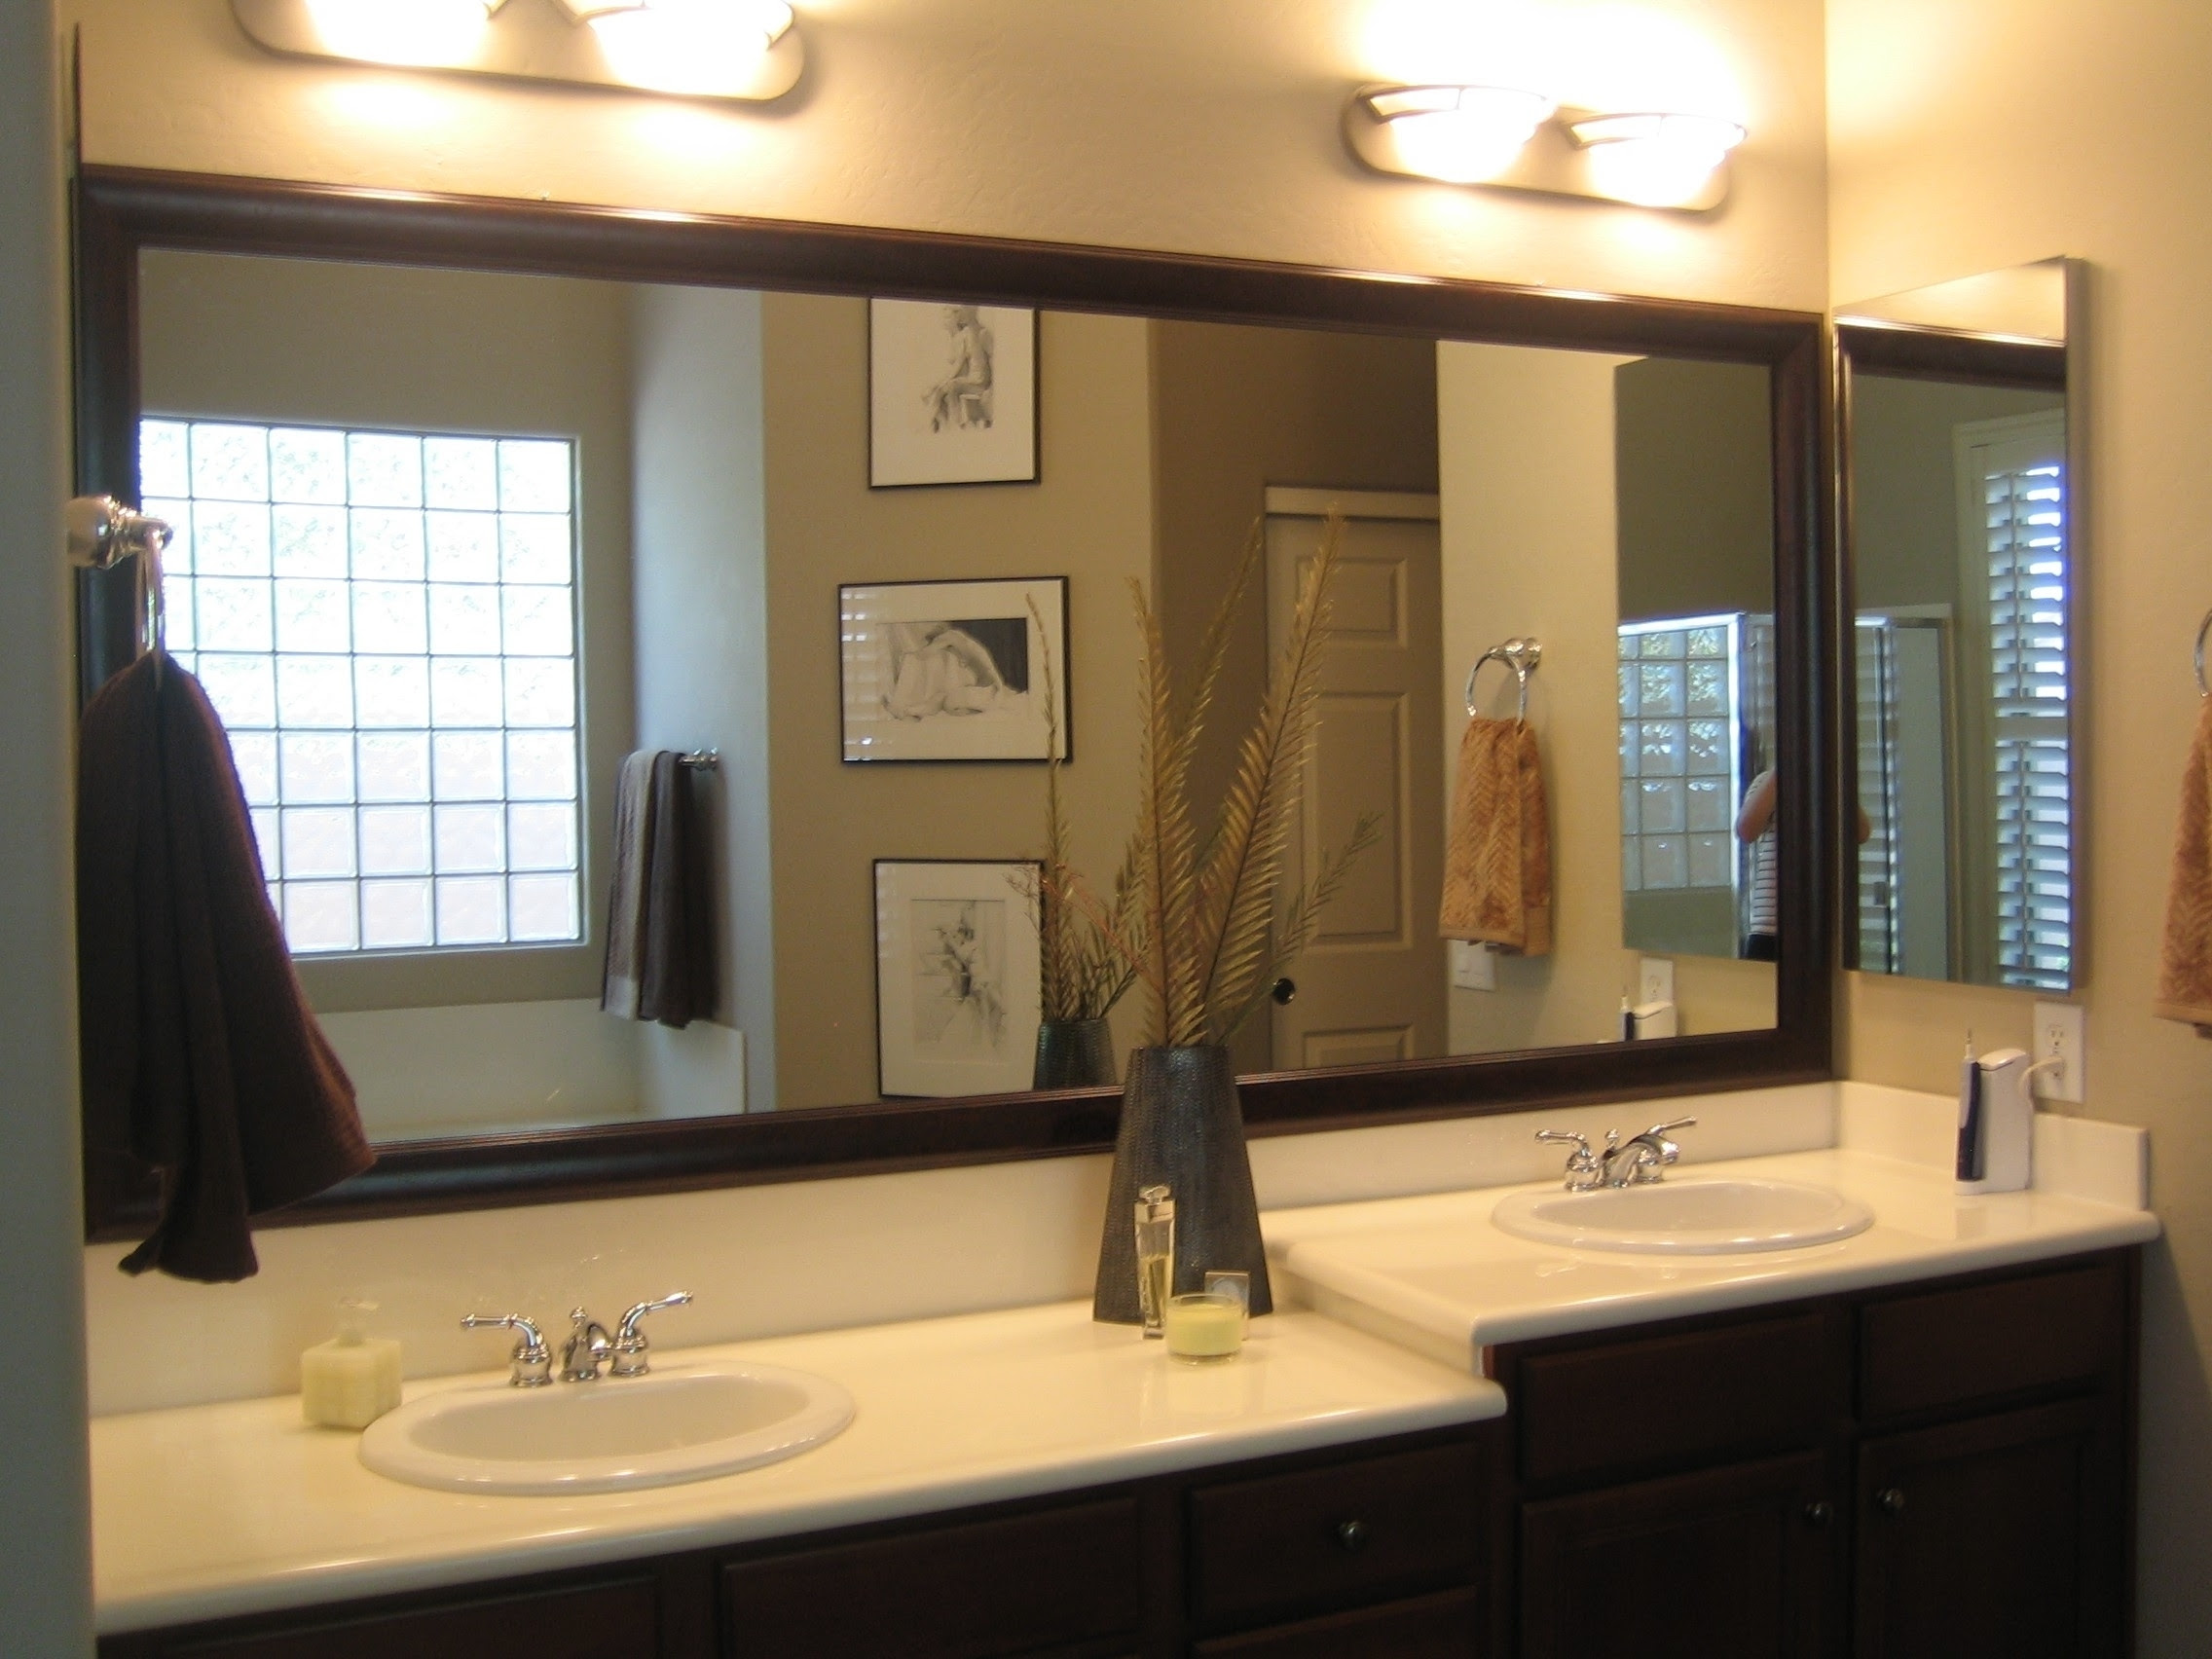 Bathroom mirrors - separate or one big piece of glass ...